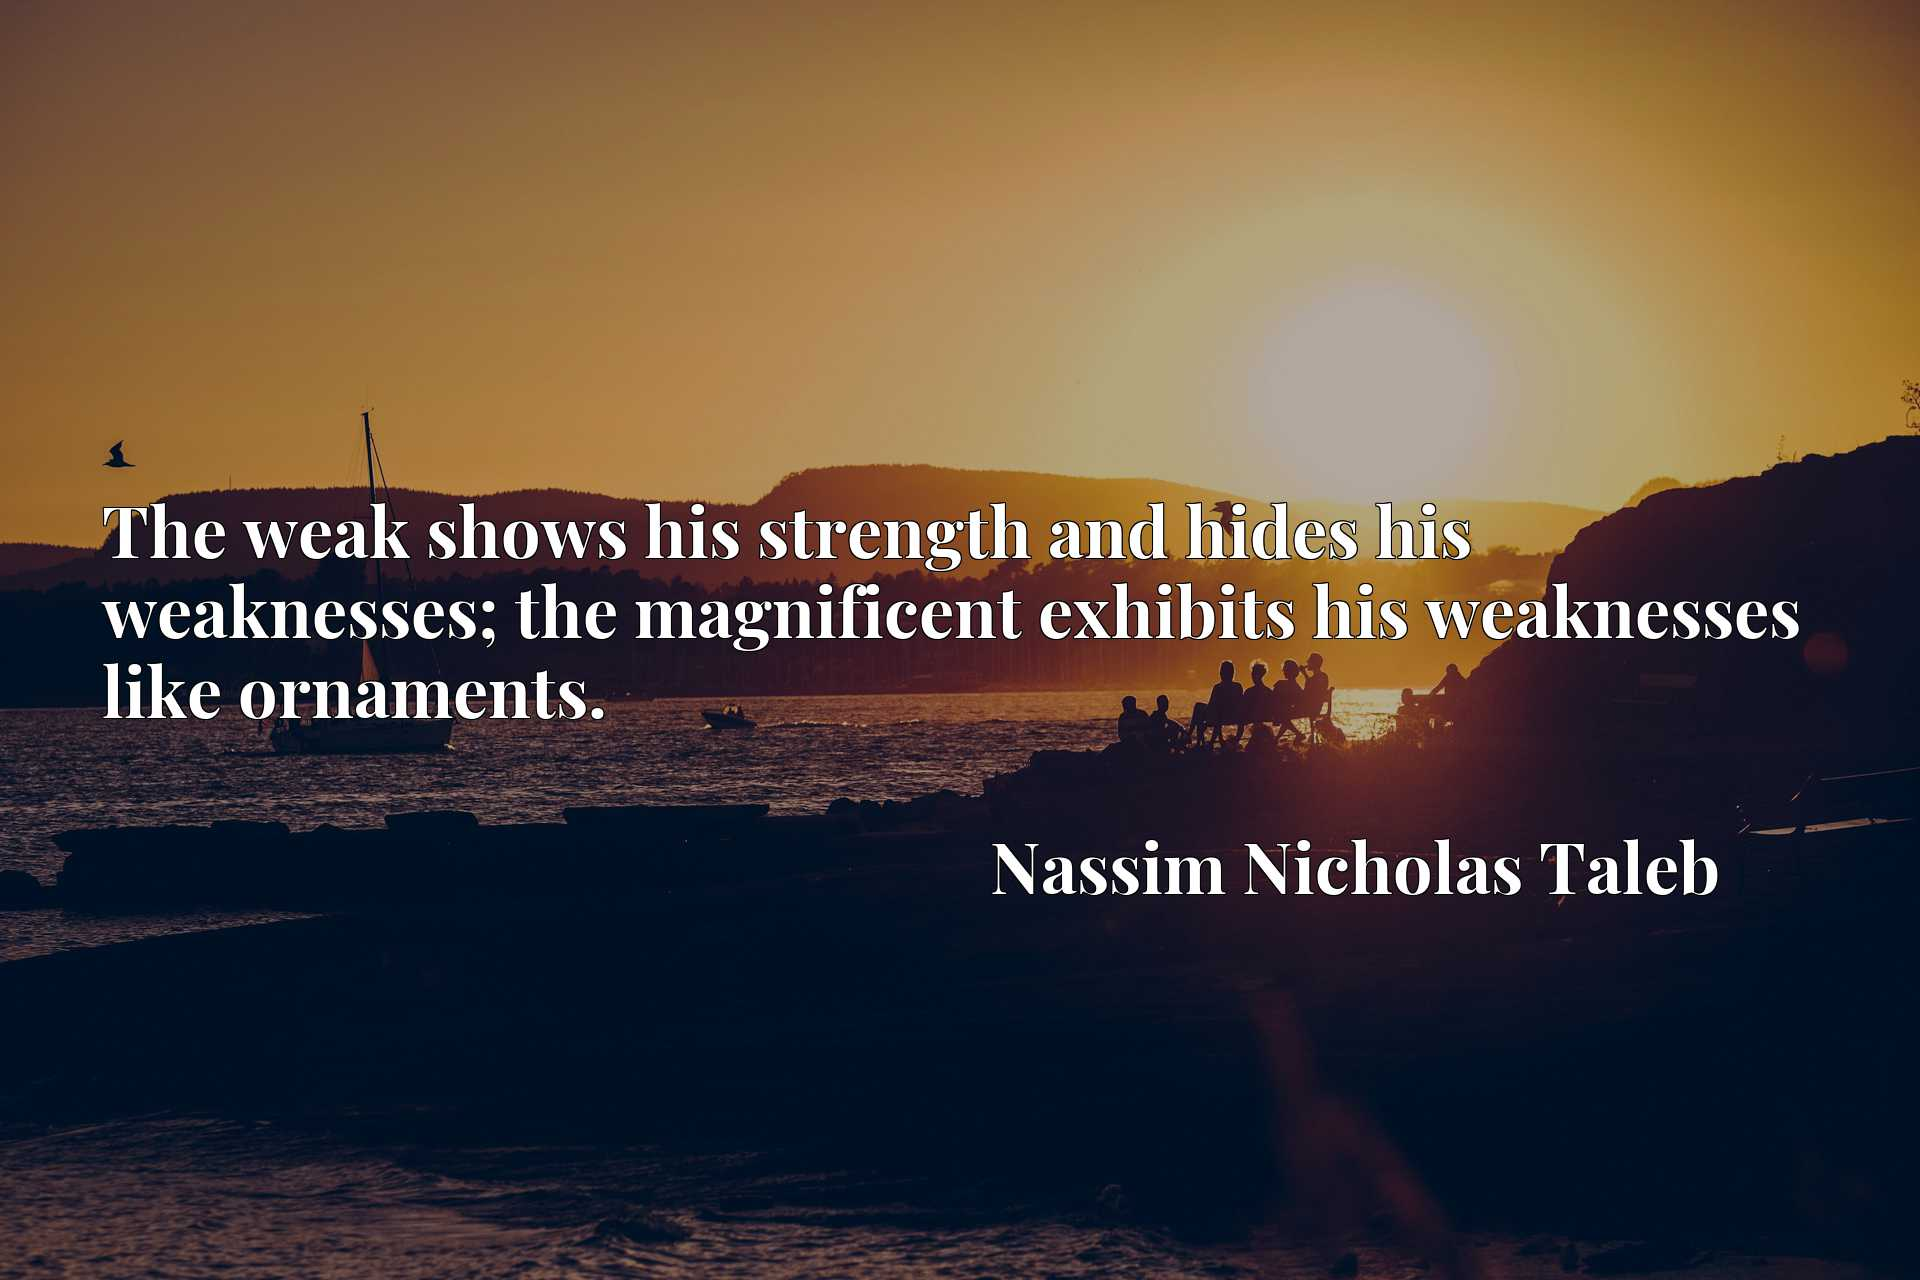 The weak shows his strength and hides his weaknesses; the magnificent exhibits his weaknesses like ornaments.